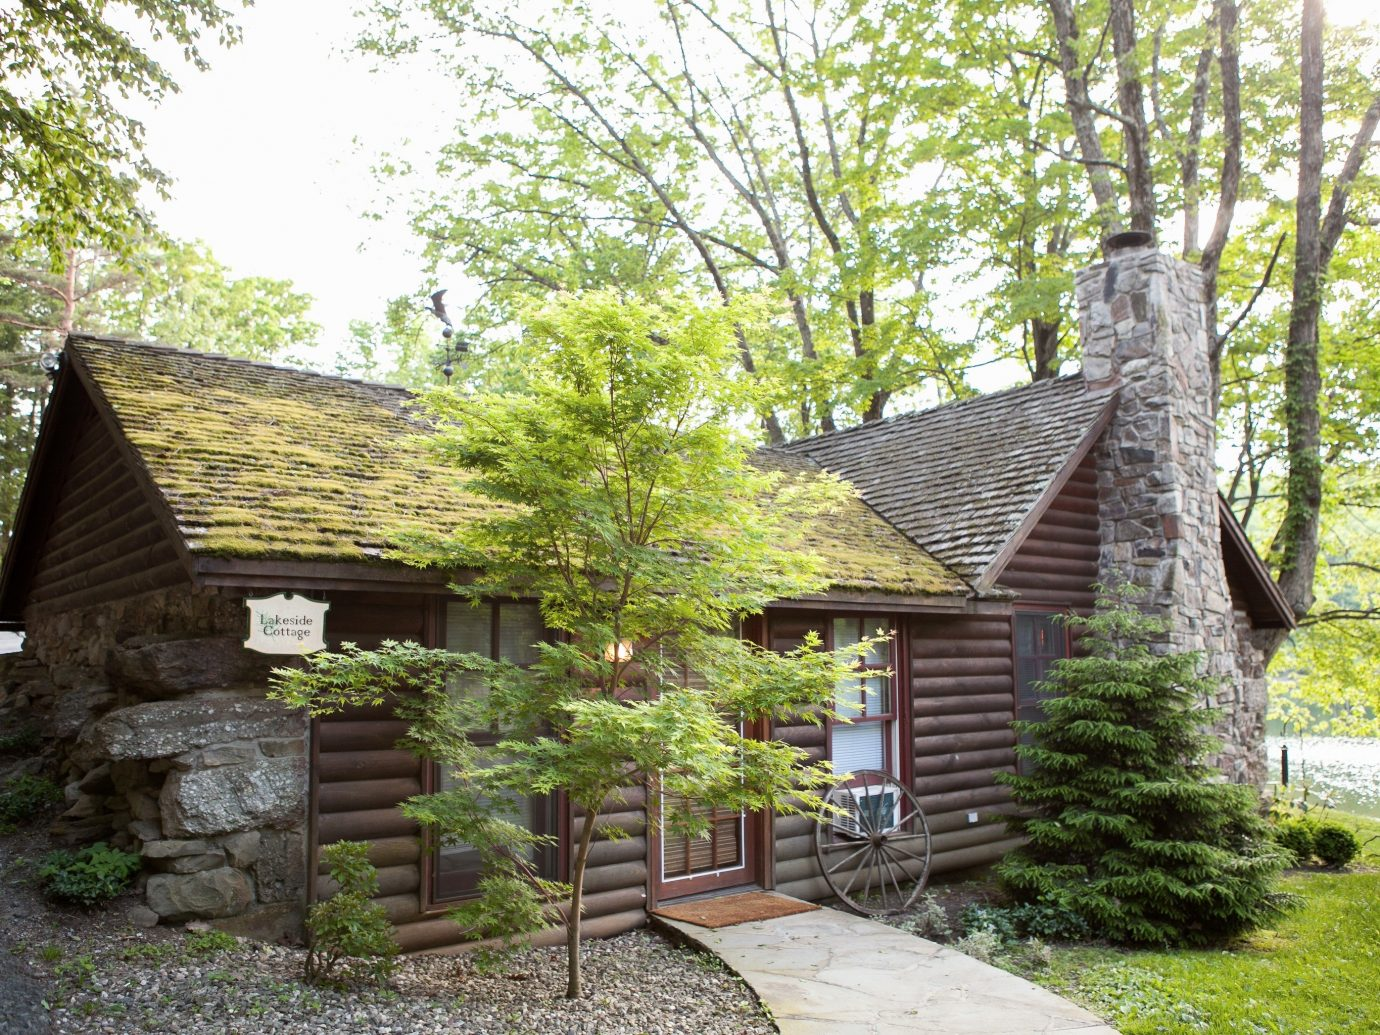 Boutique Hotels Fall Travel Hotels Outdoors + Adventure tree outdoor grass house building property cottage home log cabin real estate farmhouse estate hut historic house stone area Garden wood shade